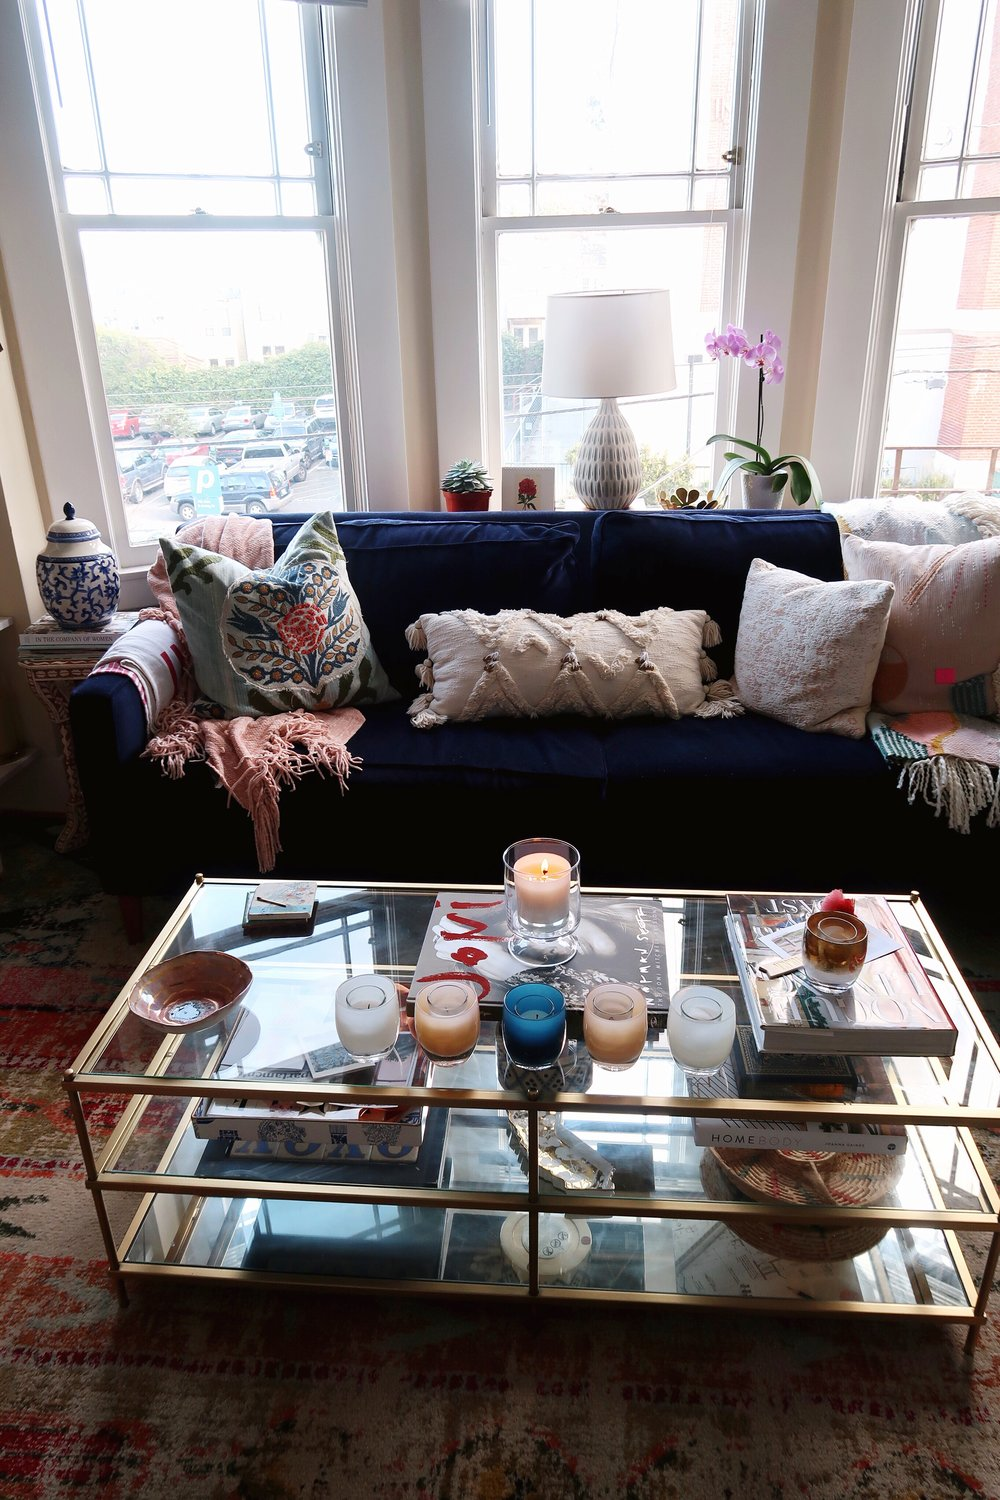 #5: COZY ACCENTS - What is a living space if it's not cozy?